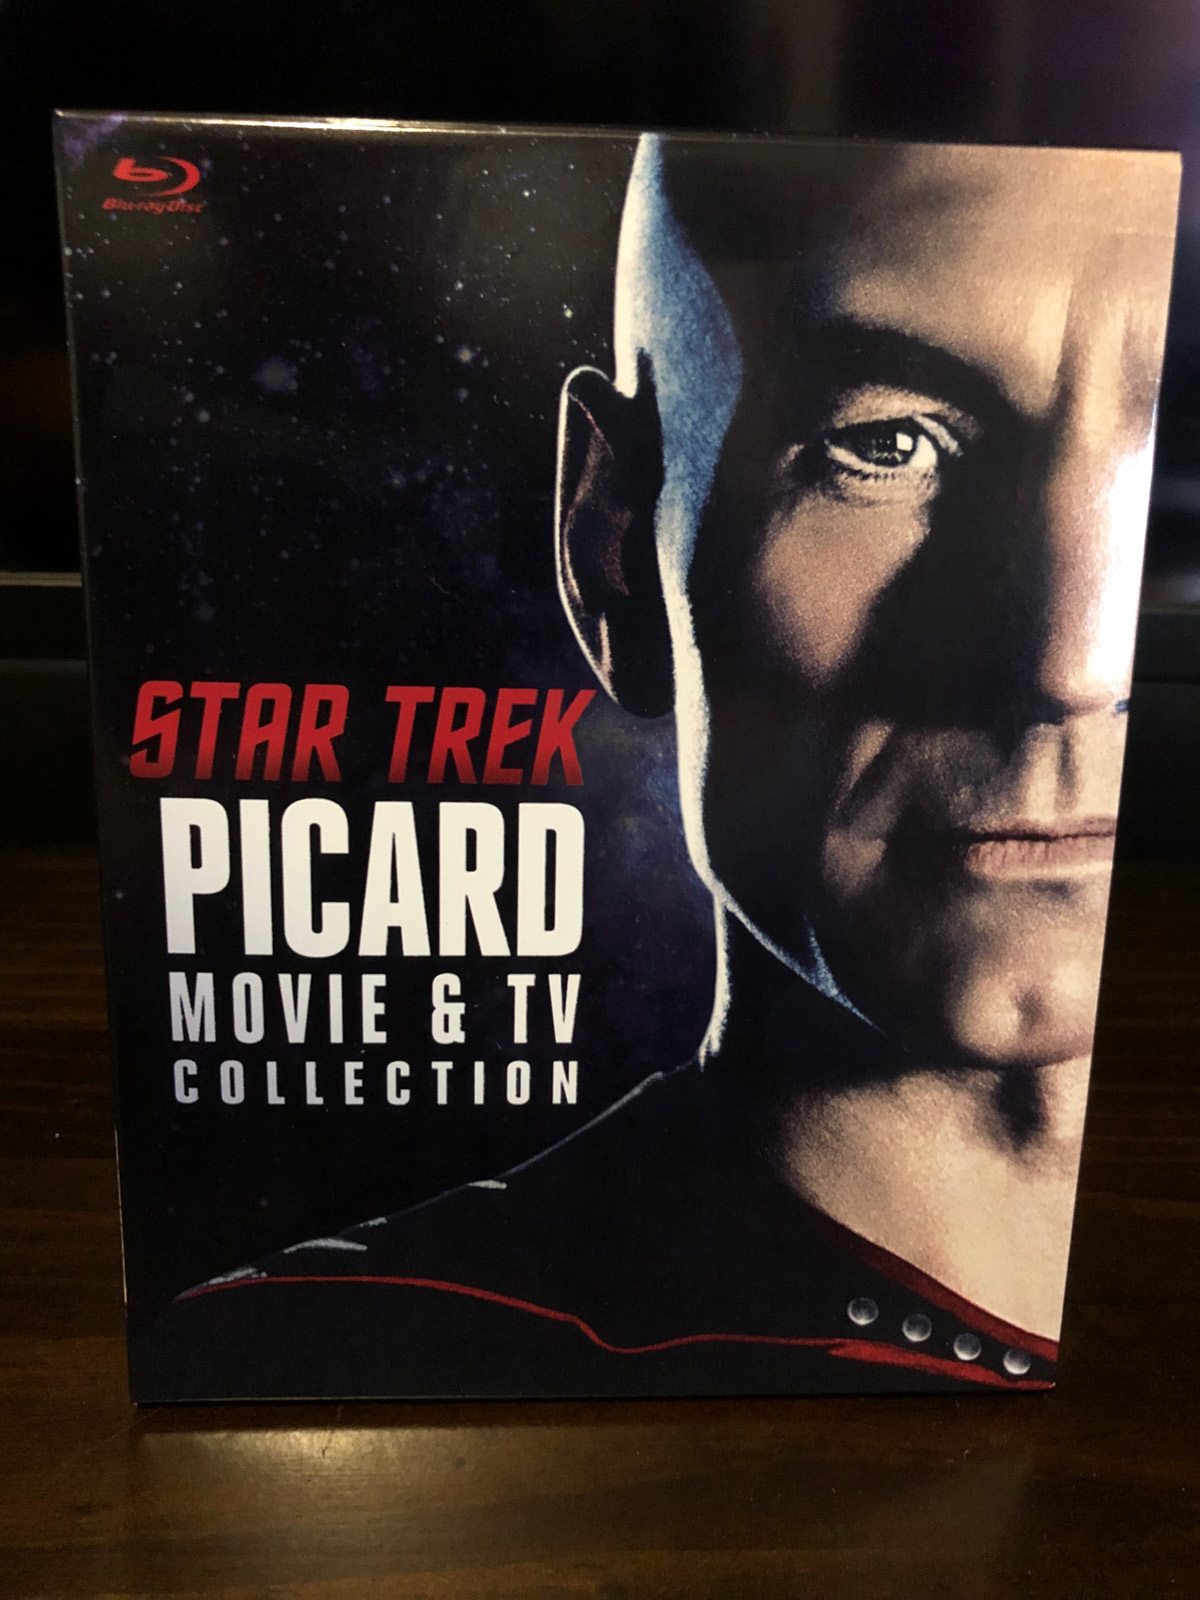 Star Trek Picard Movie & TV Collection